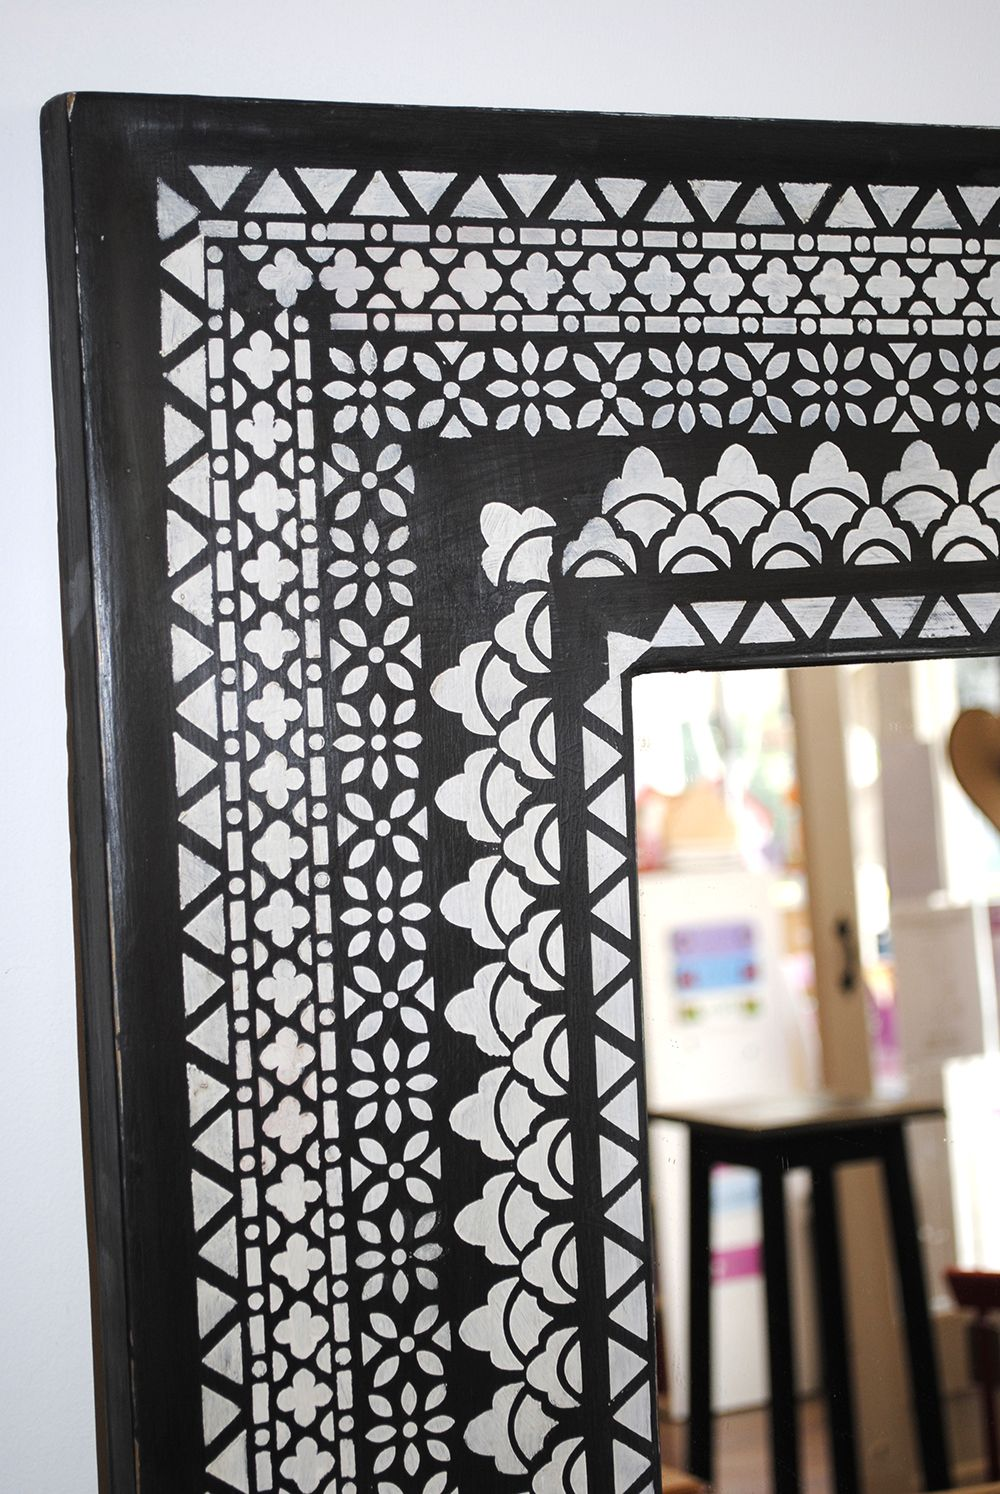 Stencilled mirror frame using a selection of border stencils from stencilled mirror frame using a selection of border stencils from nicolette tabram designs amipublicfo Image collections